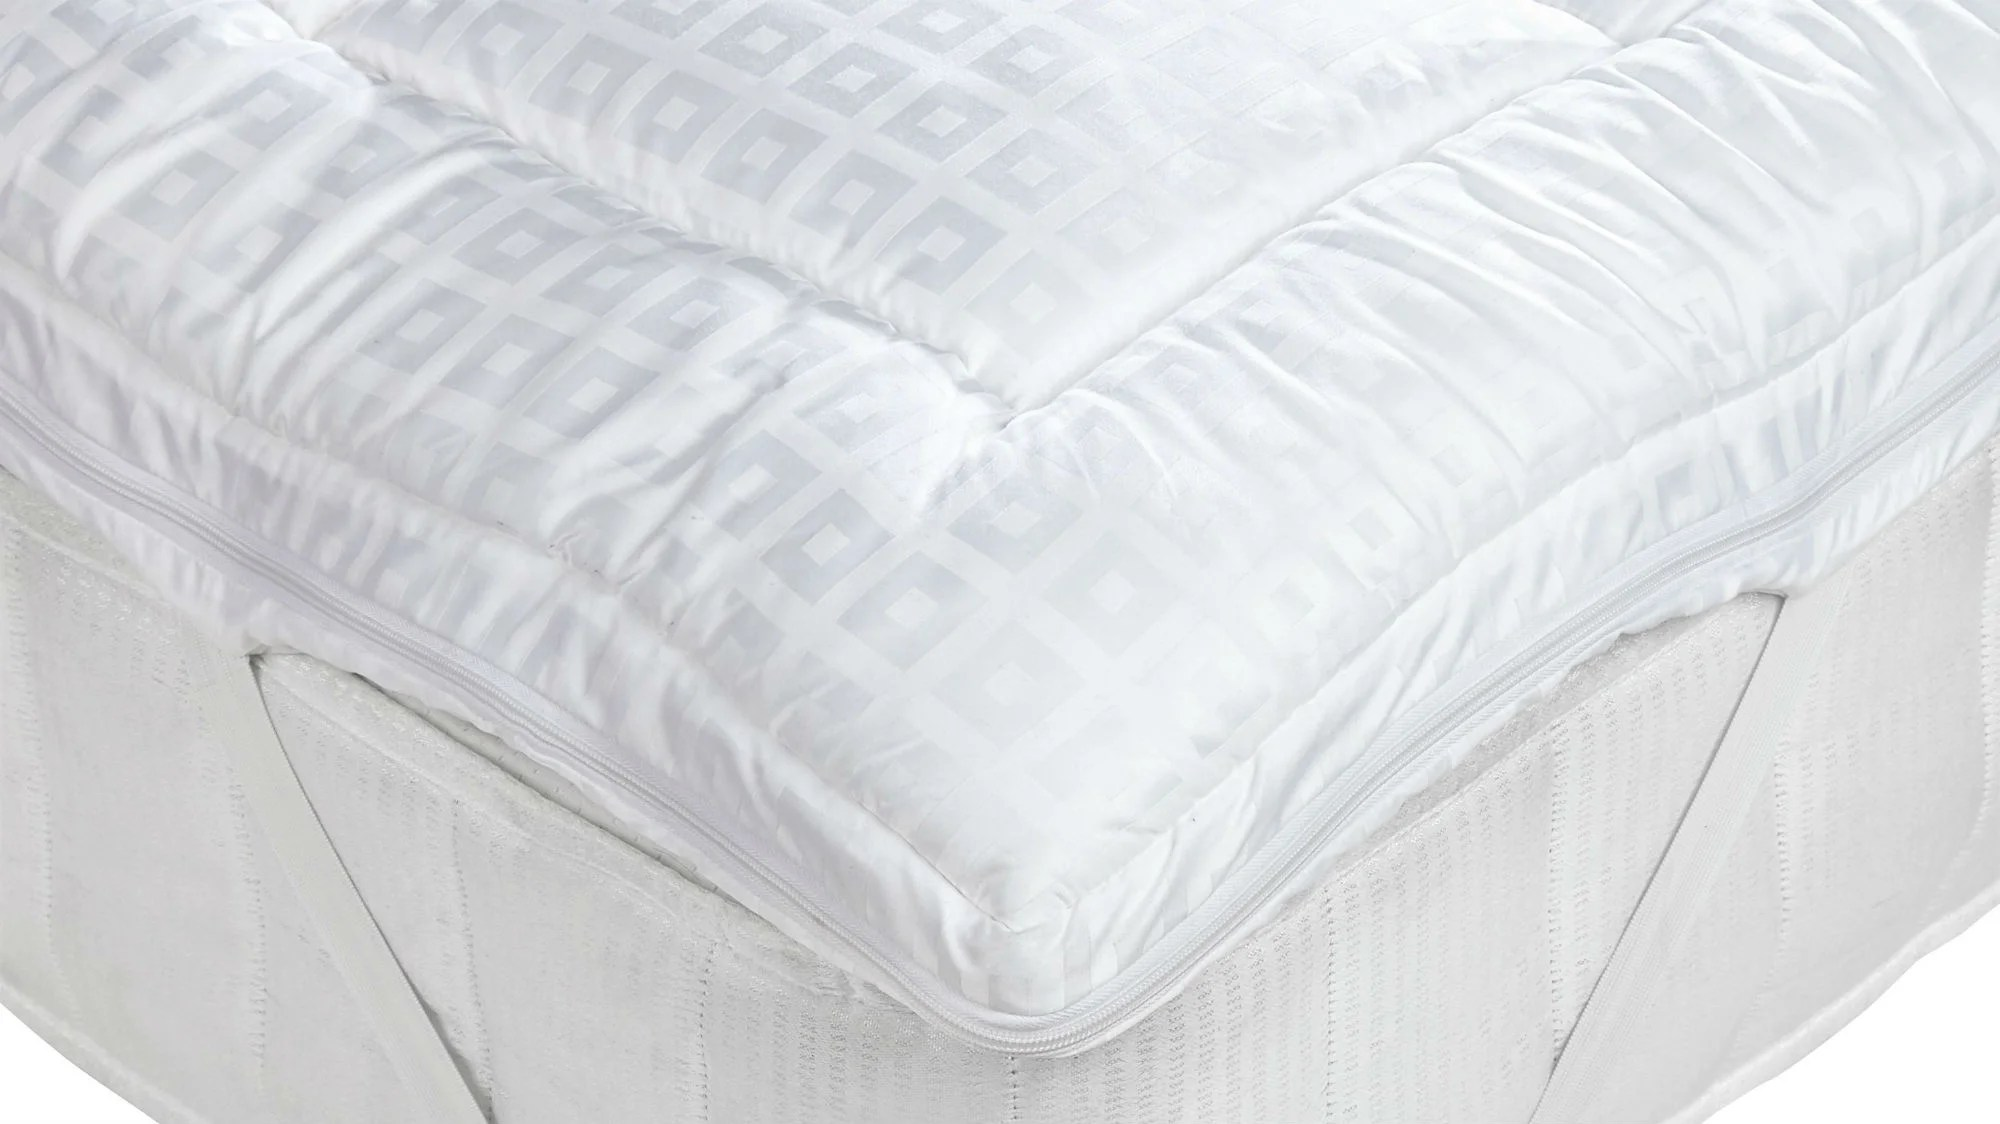 Buy Mattress Topper Best Mattress Toppers The Best Mattress Toppers To Buy